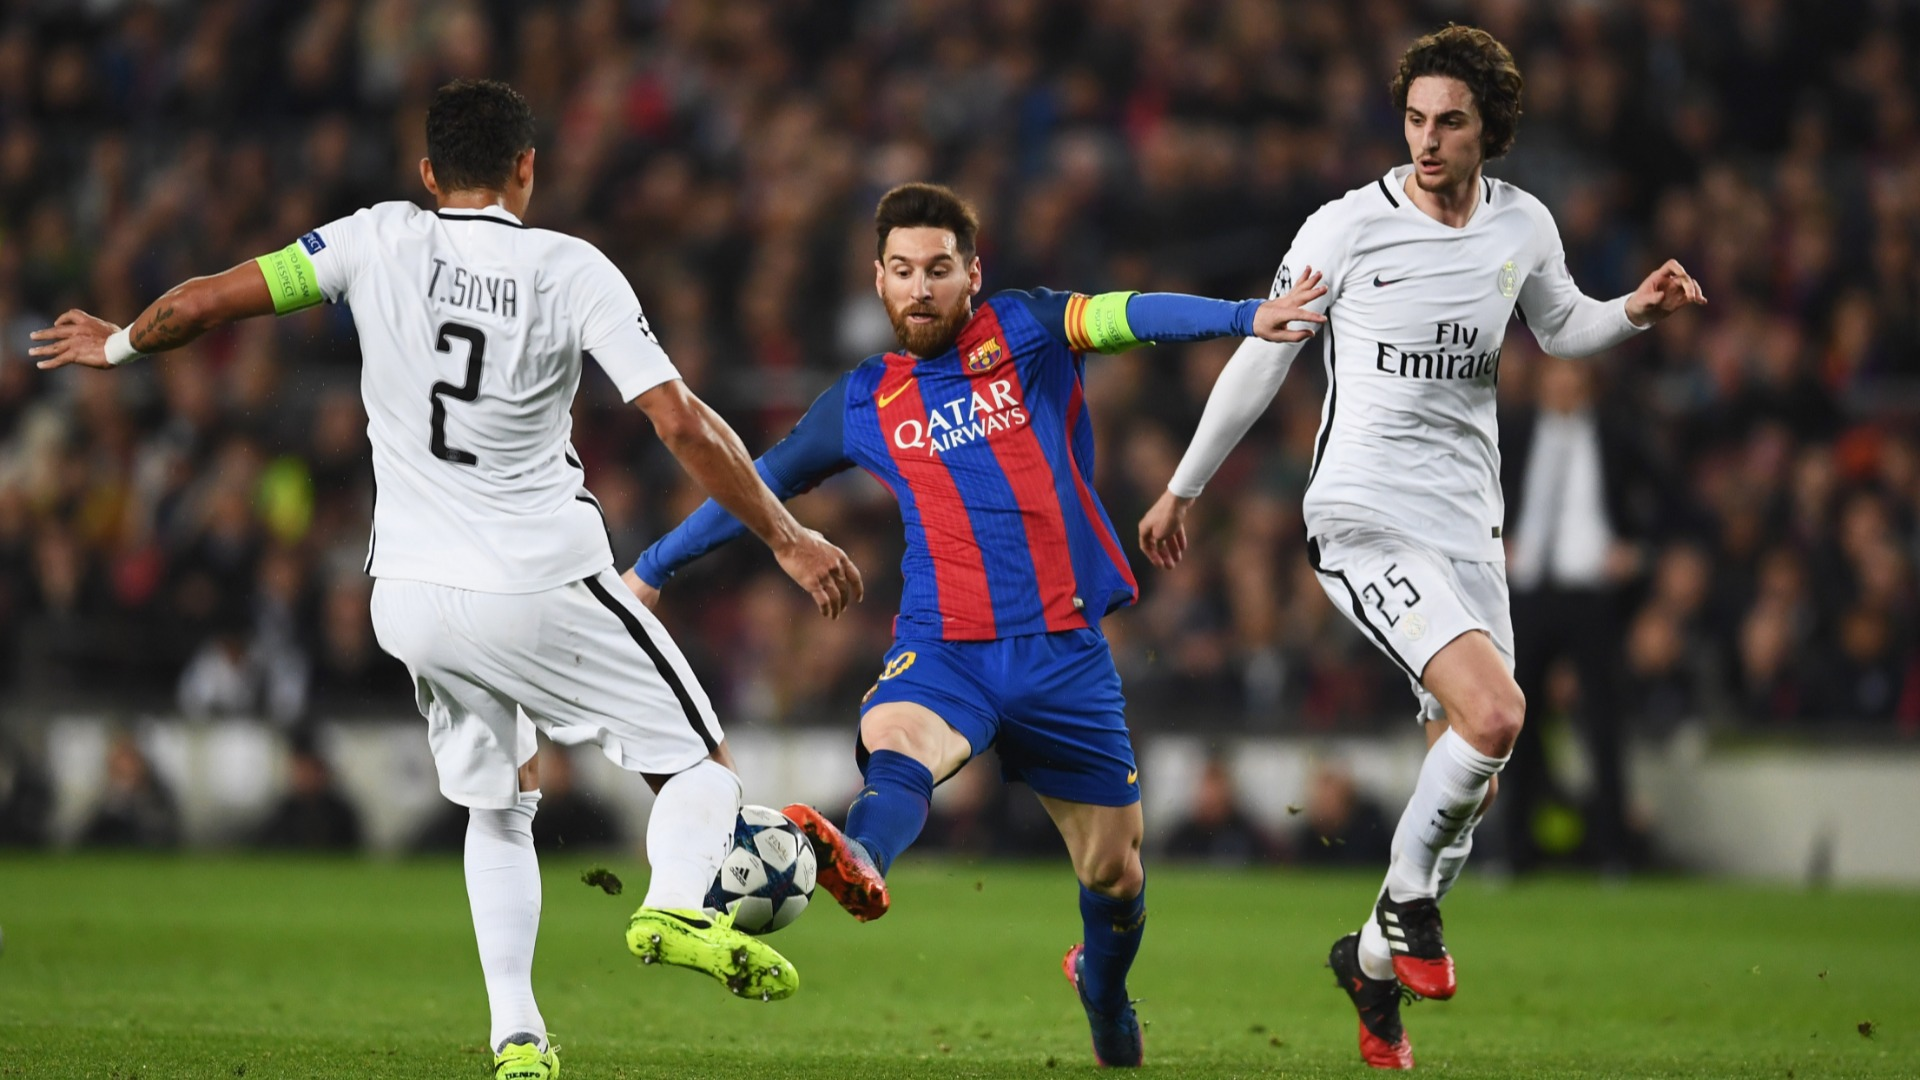 Messi played the referee against PSG, claims Silva